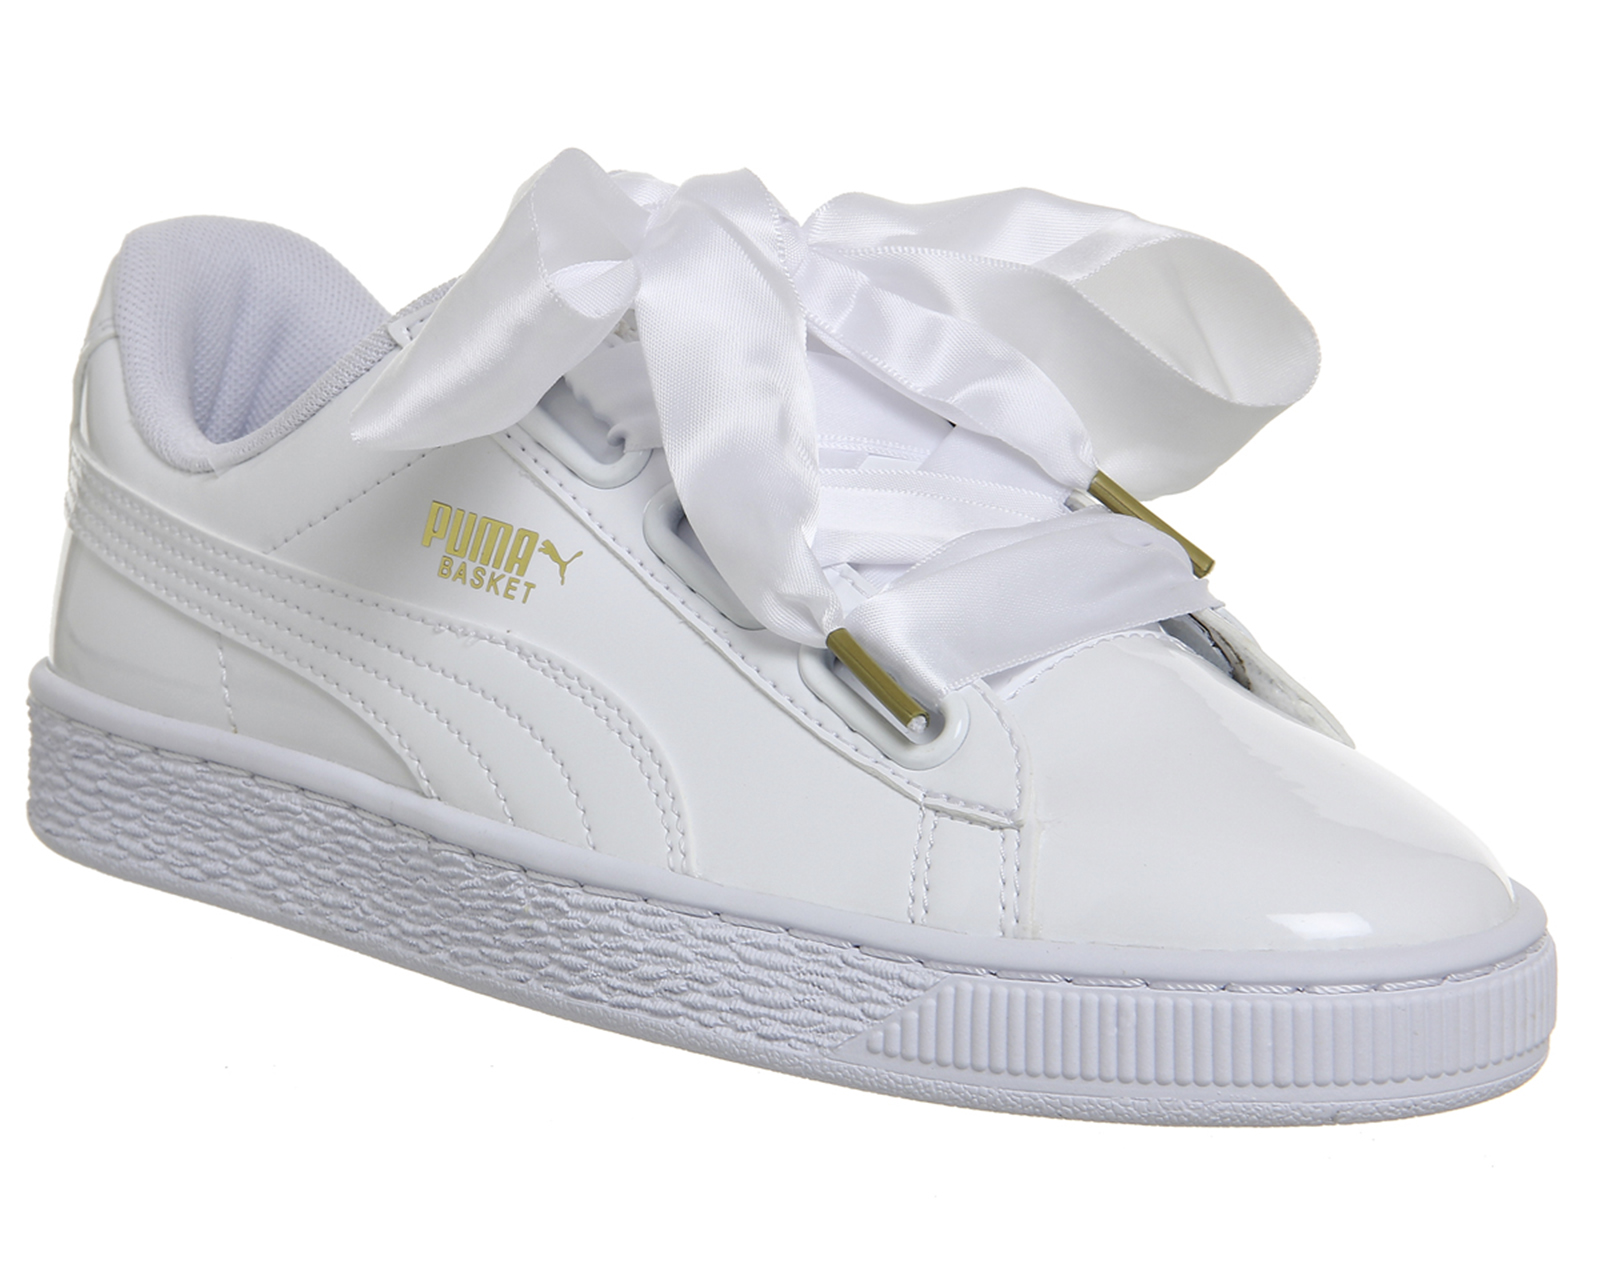 Puma Basket Heart Chile